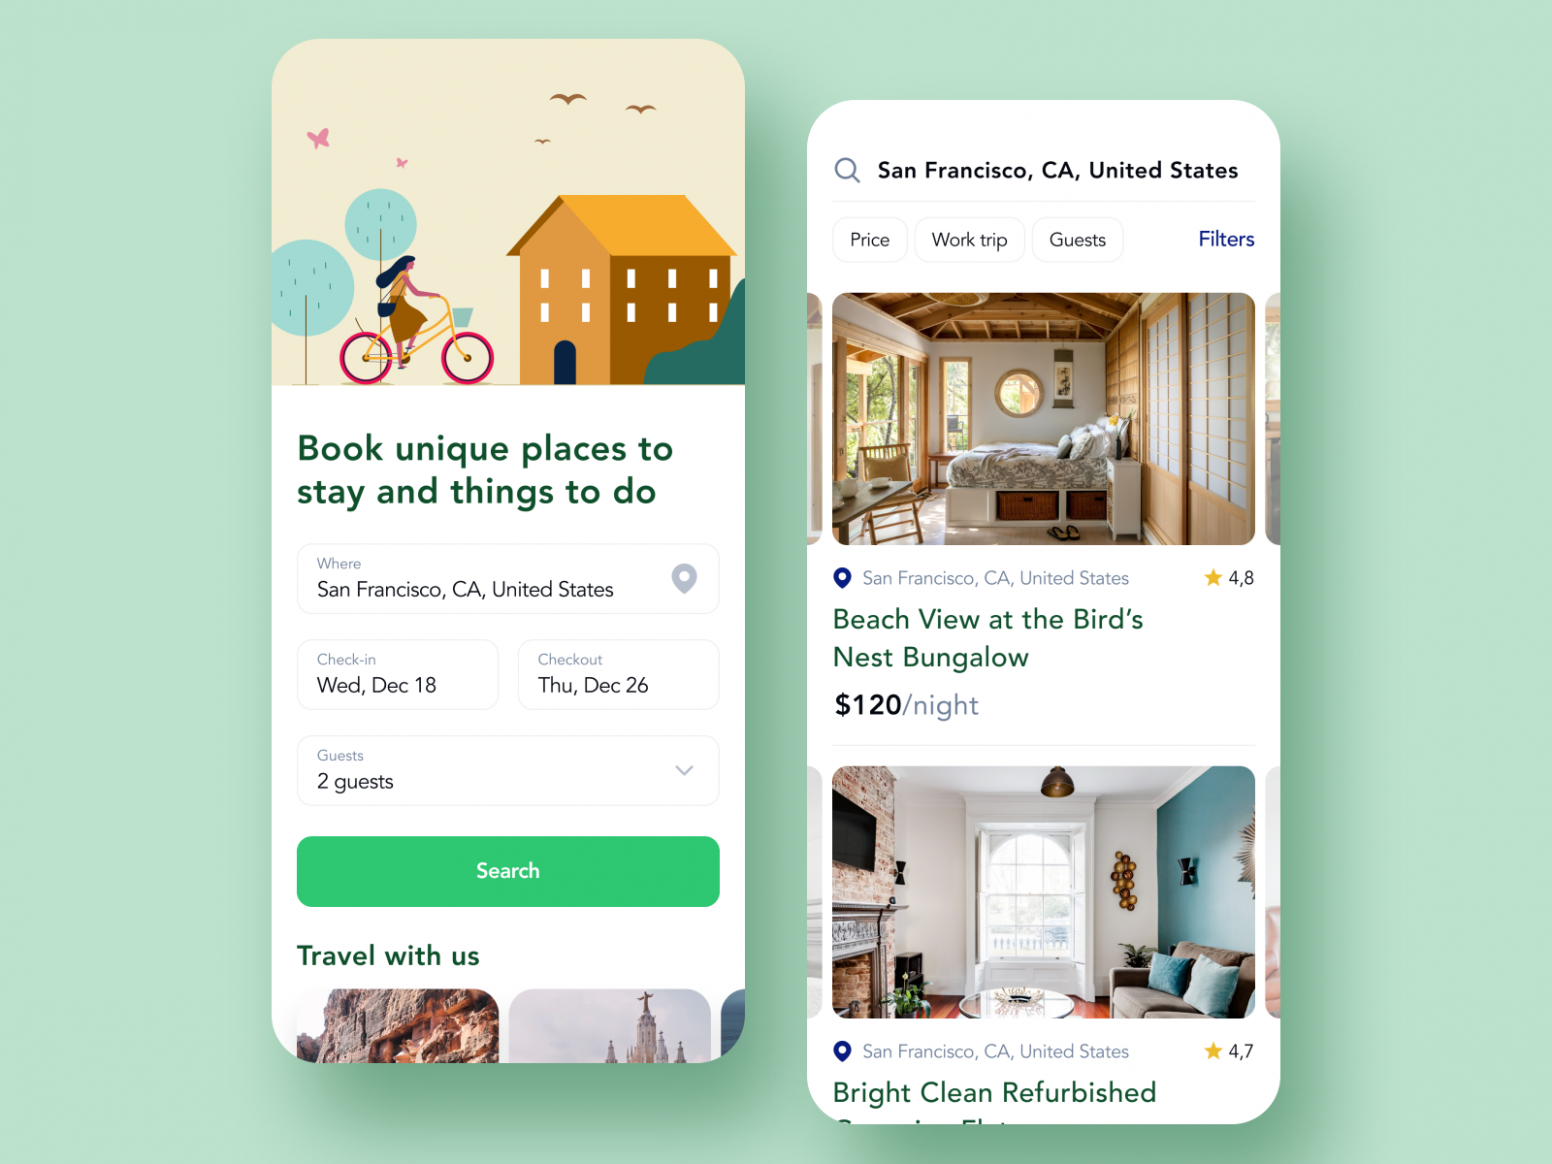 House Renting App For Travelers by Ilya Sablin on Dribbble